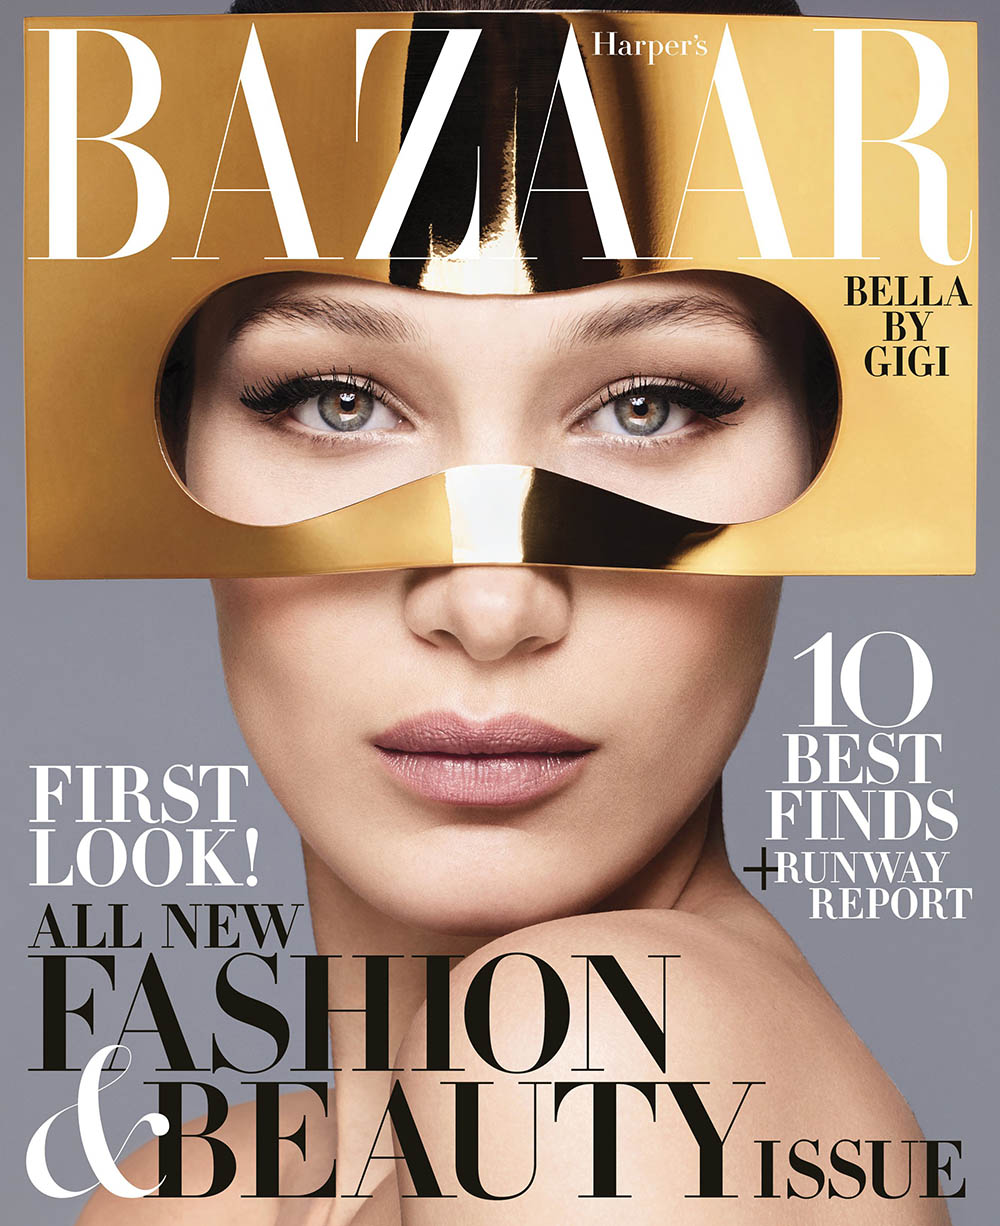 Bella Hadid covers Harper's Bazaar US June 2018 by Sølve Sundsbø